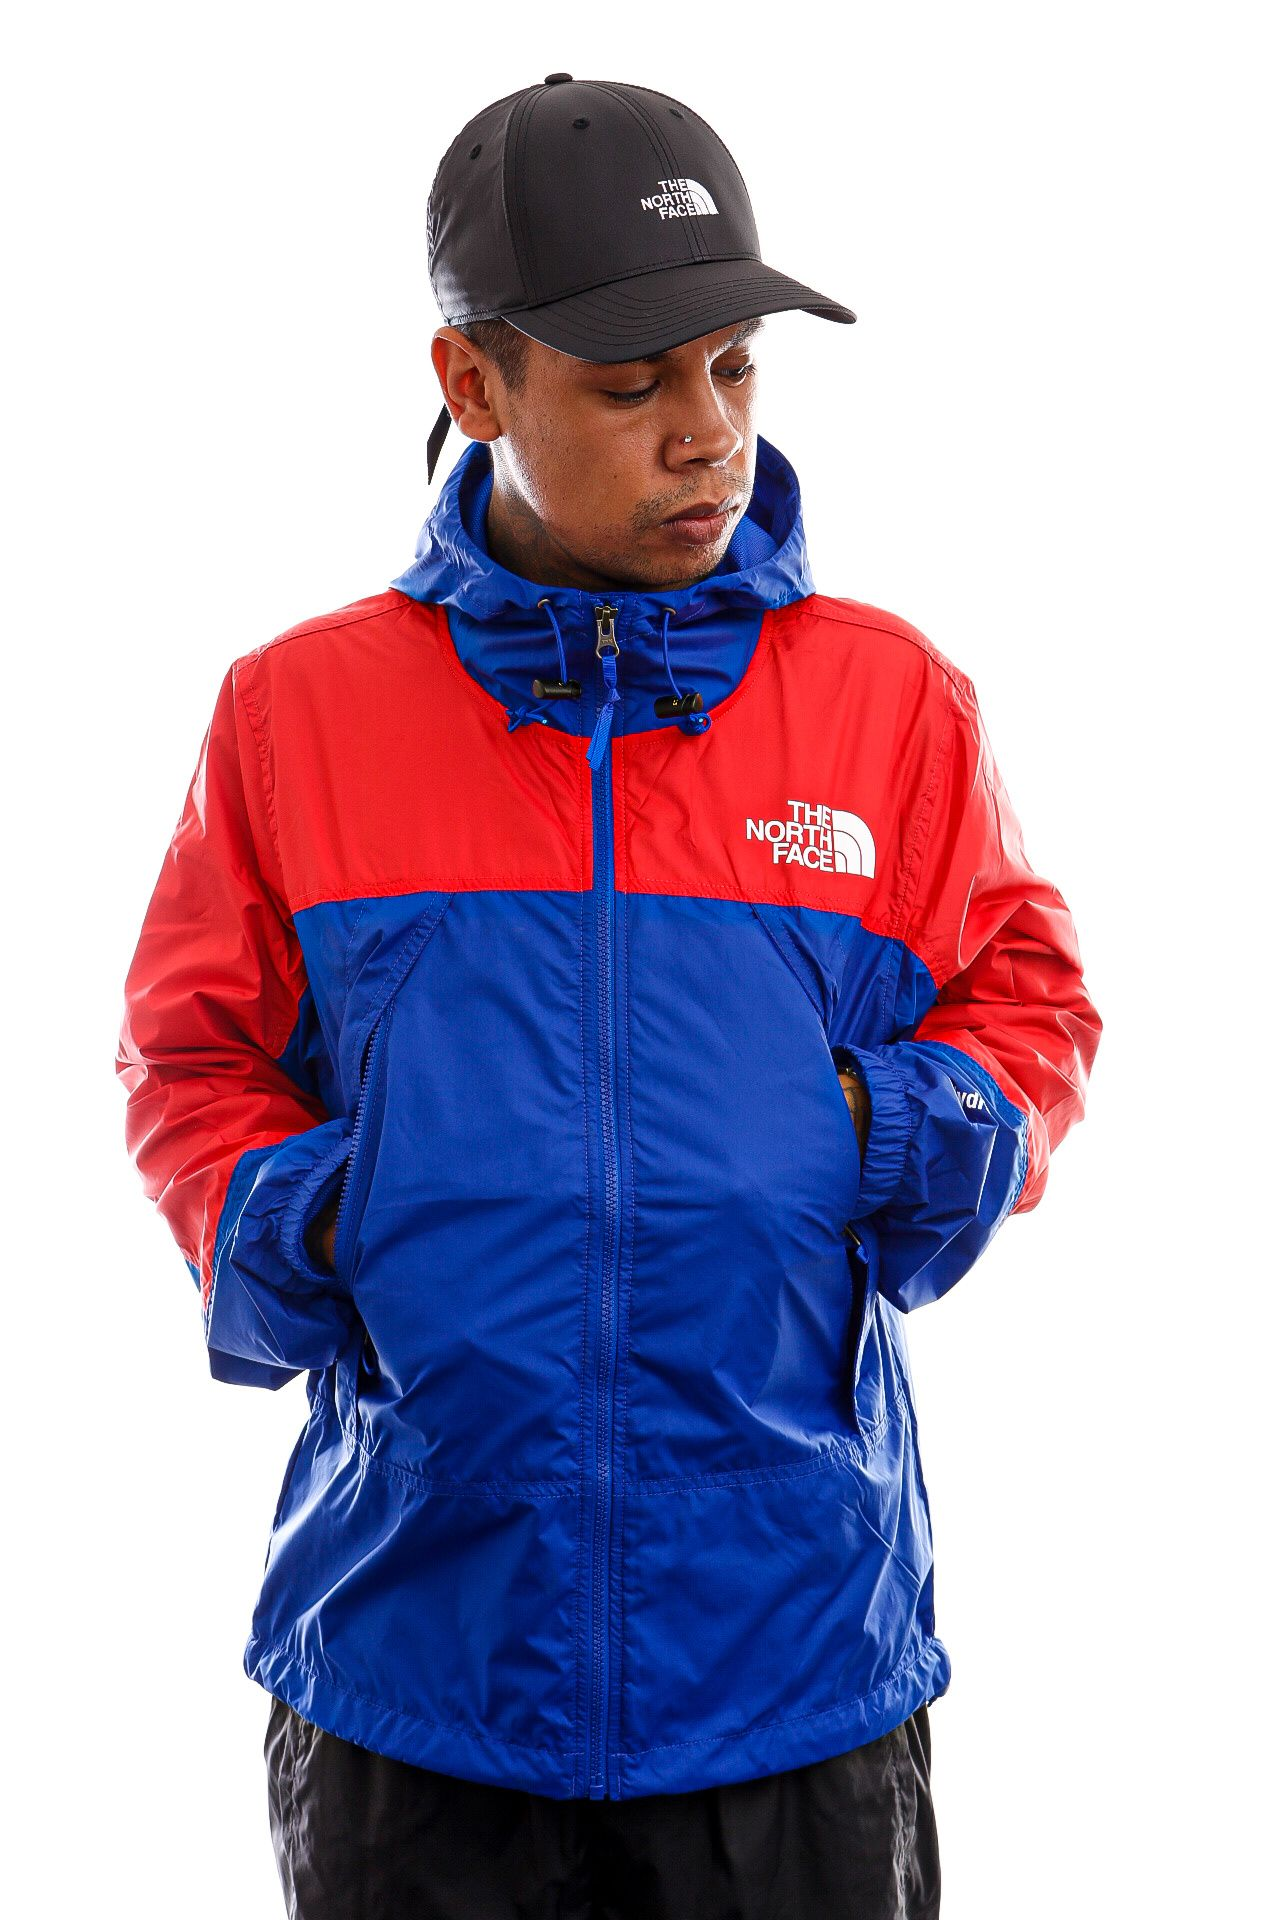 Afbeelding van The North Face Jas Mens Hydrenaline Wind Jacket TNF Blue/Horizon Red NF0A53C1Z451